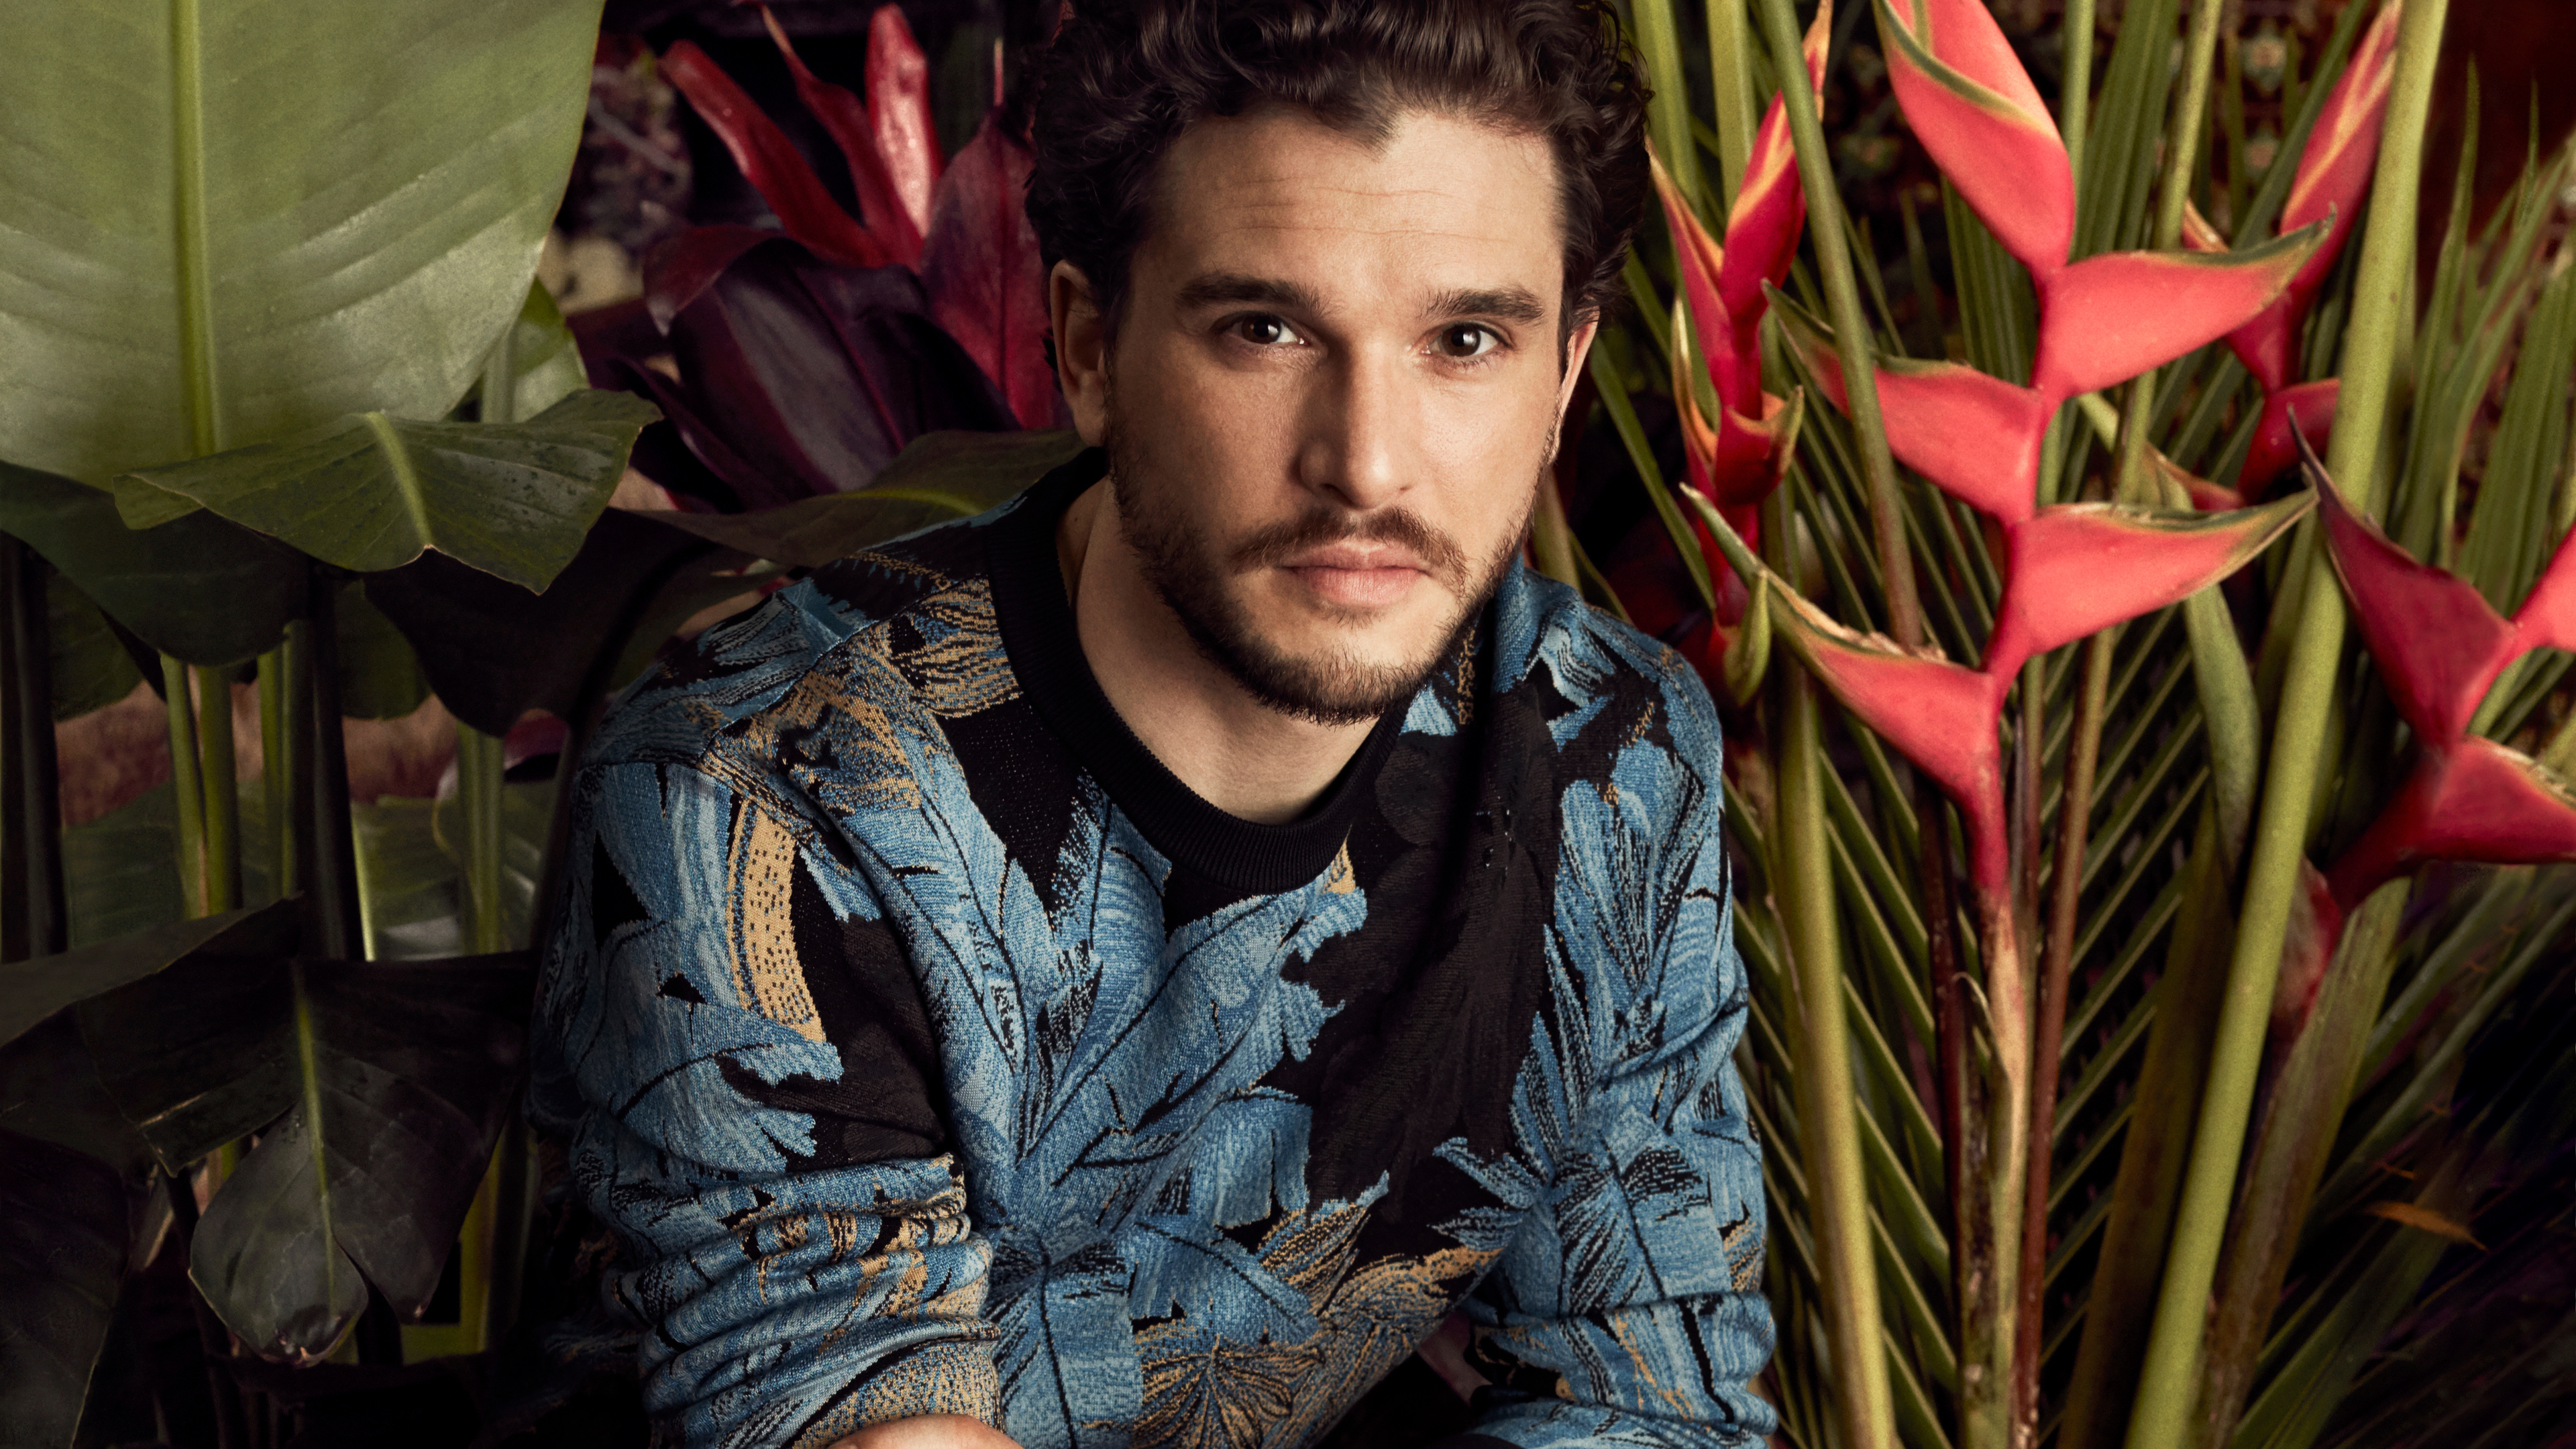 kit harington photoshoot for game of thrones 4k 1558220621 - Kit Harington Photoshoot For Game Of Thrones 4k - male celebrities wallpapers, kit harington wallpapers, hd-wallpapers, celebrities wallpapers, boys wallpapers, 4k-wallpapers